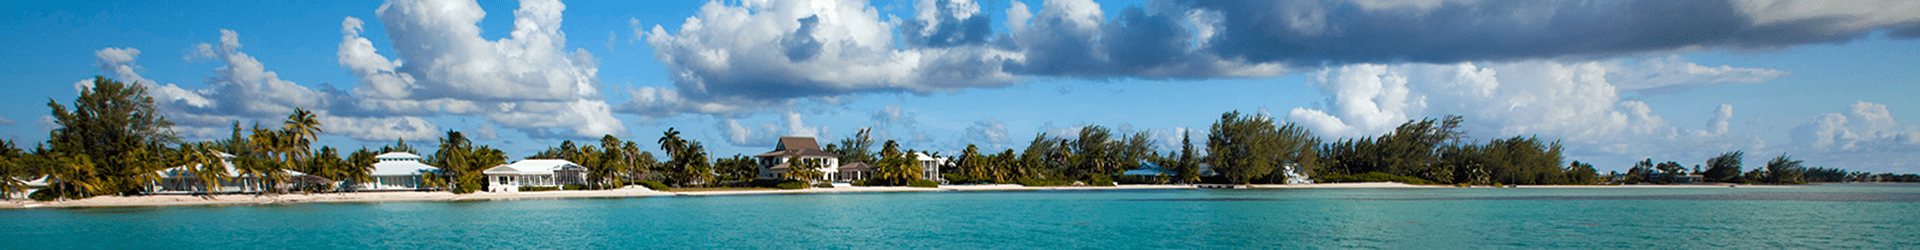 Crystal Charters - Boat Charters Cayman Islands